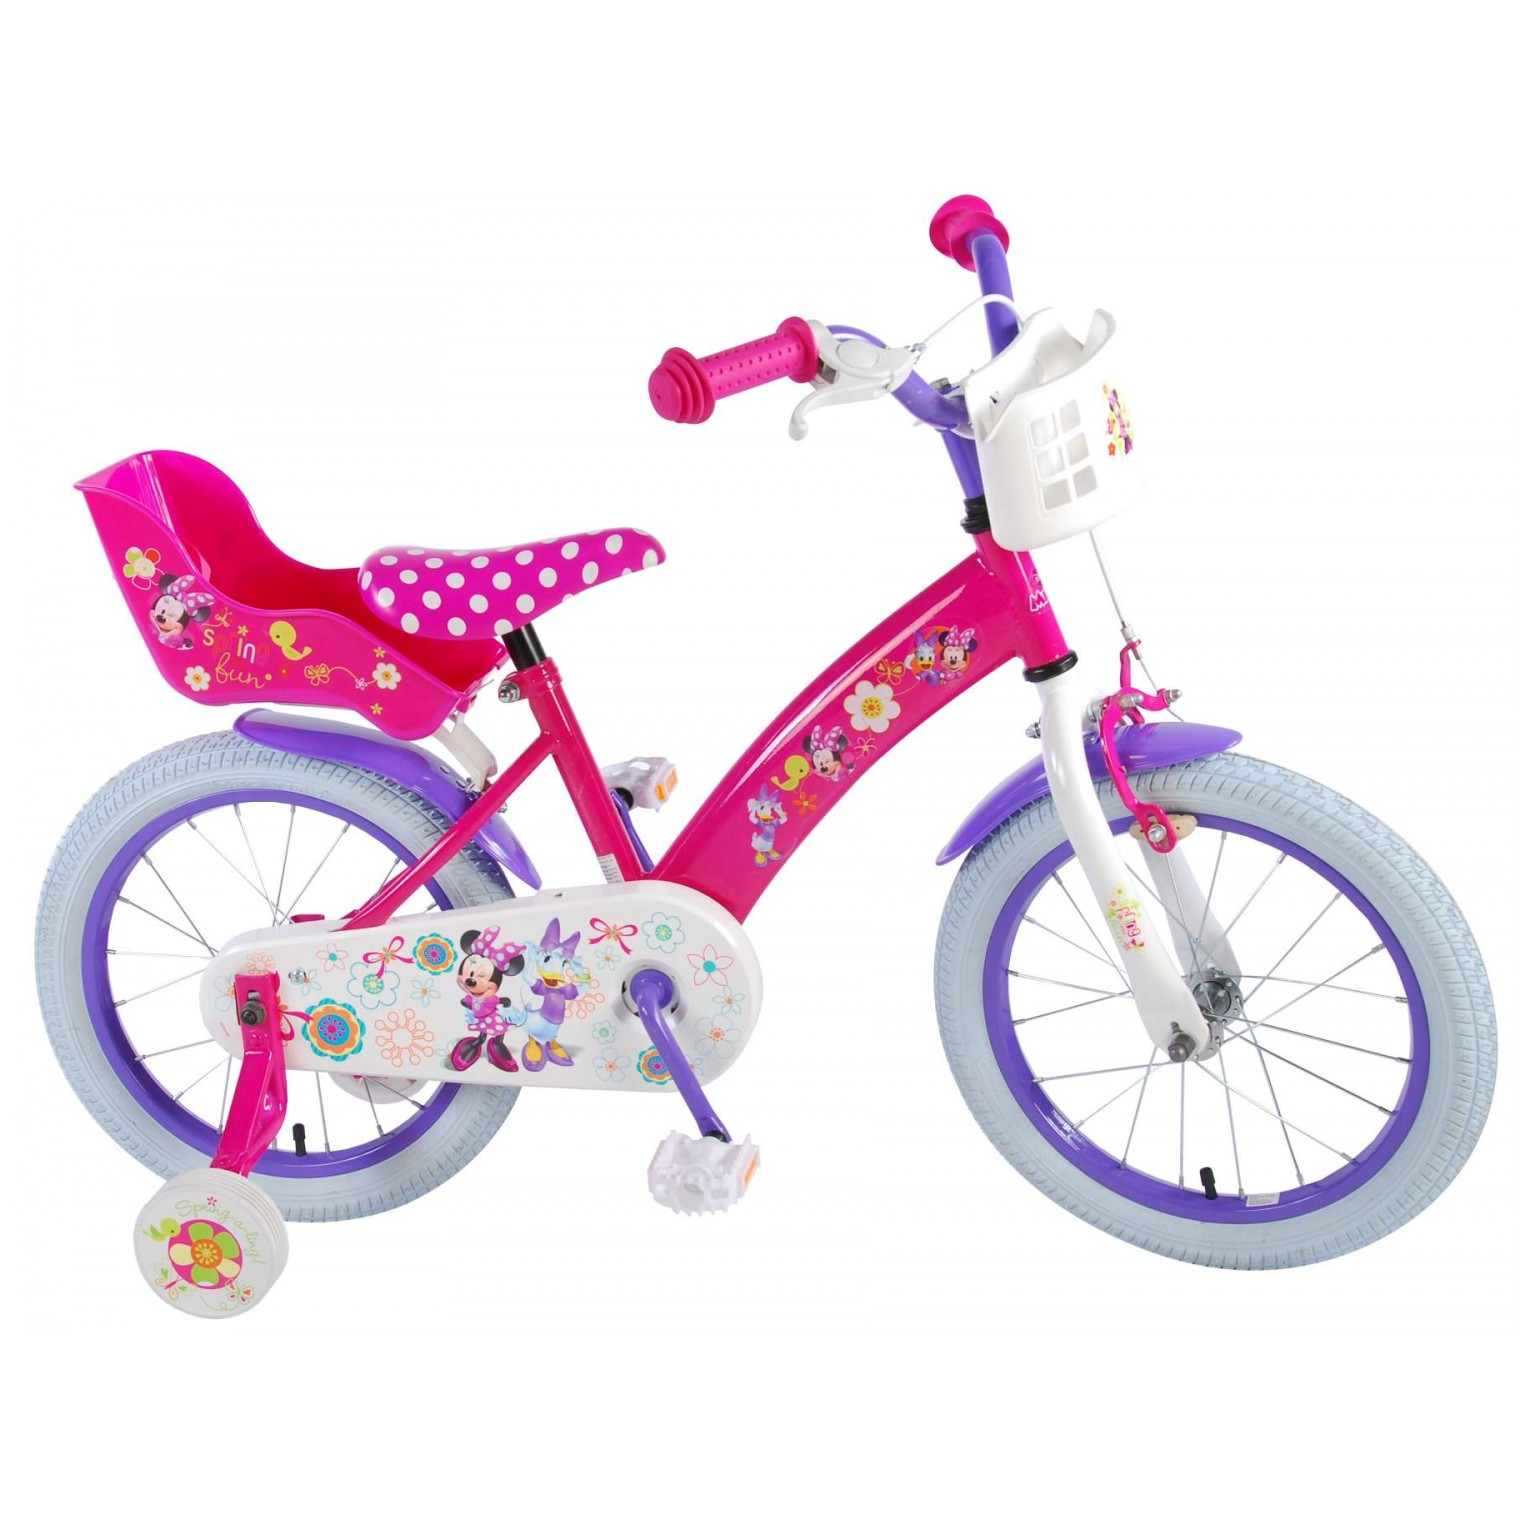 Disney Minnie Bow-Tique Fiets - 16 inch - Roze